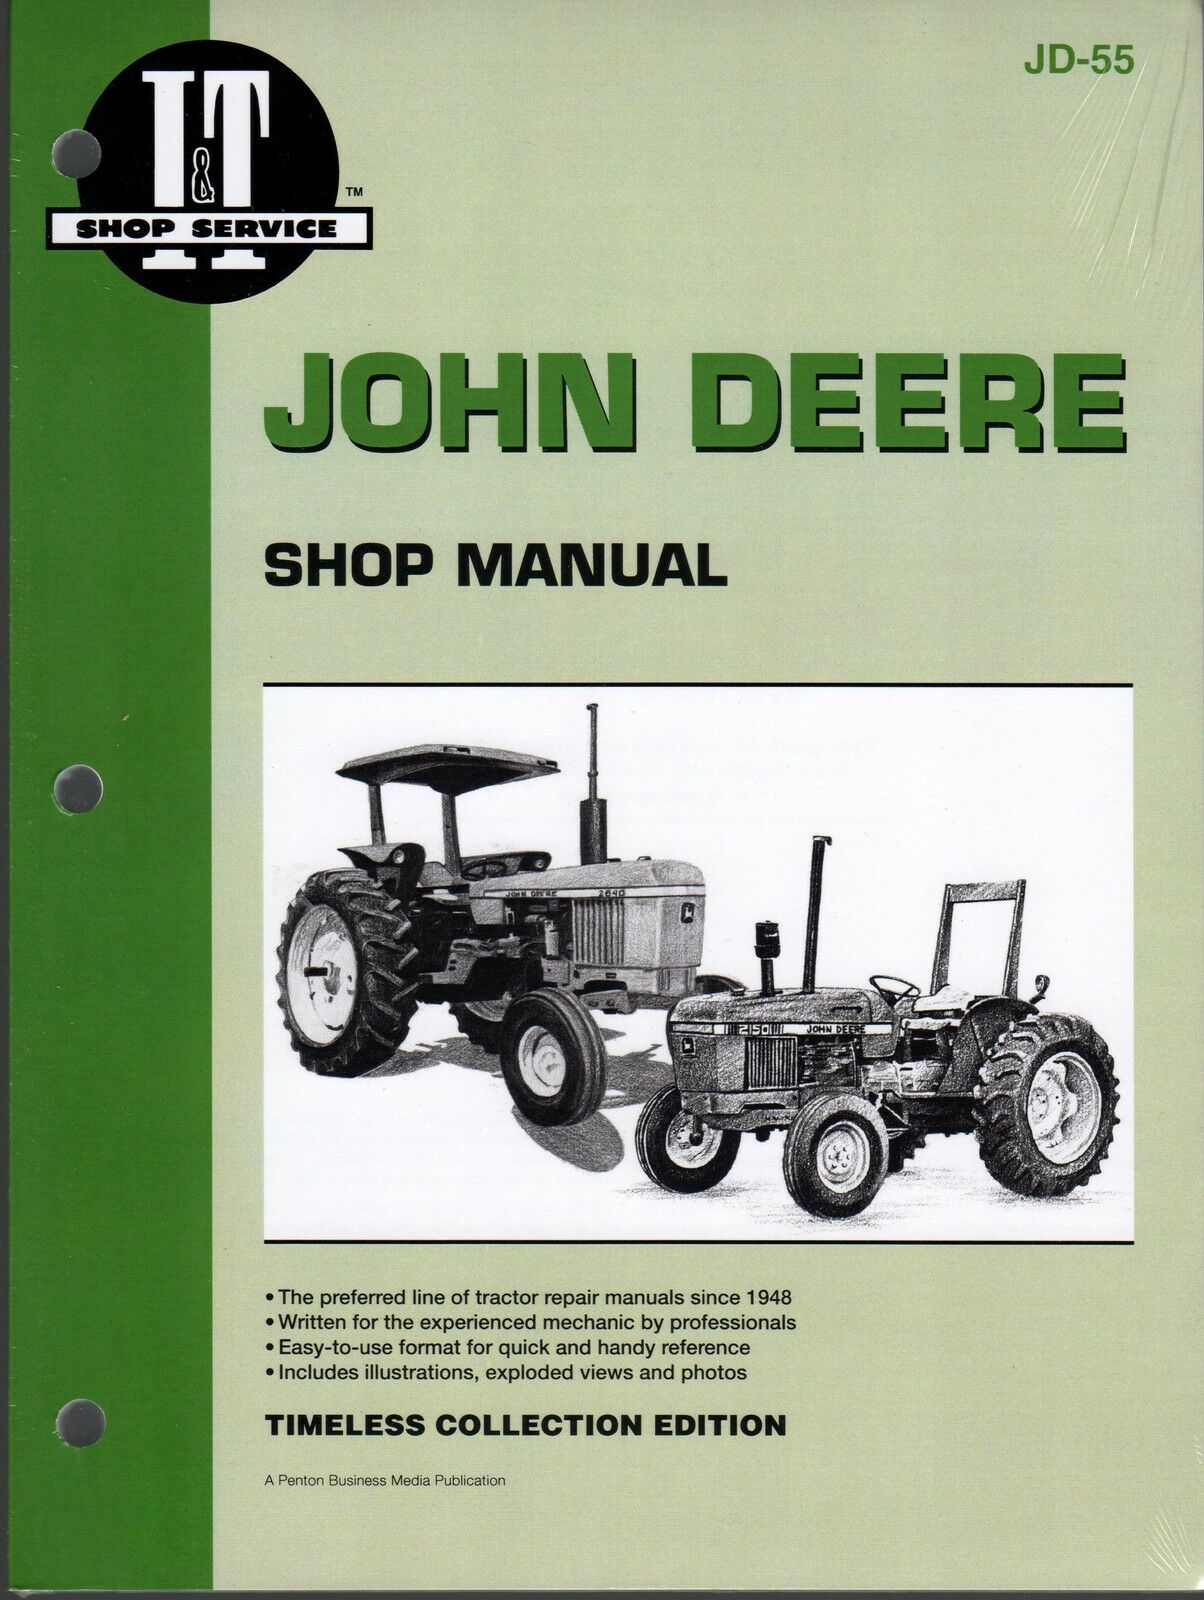 John Deere 1250, 1450, & 1650 I&t Tractor Shop Service Manual Jd-55